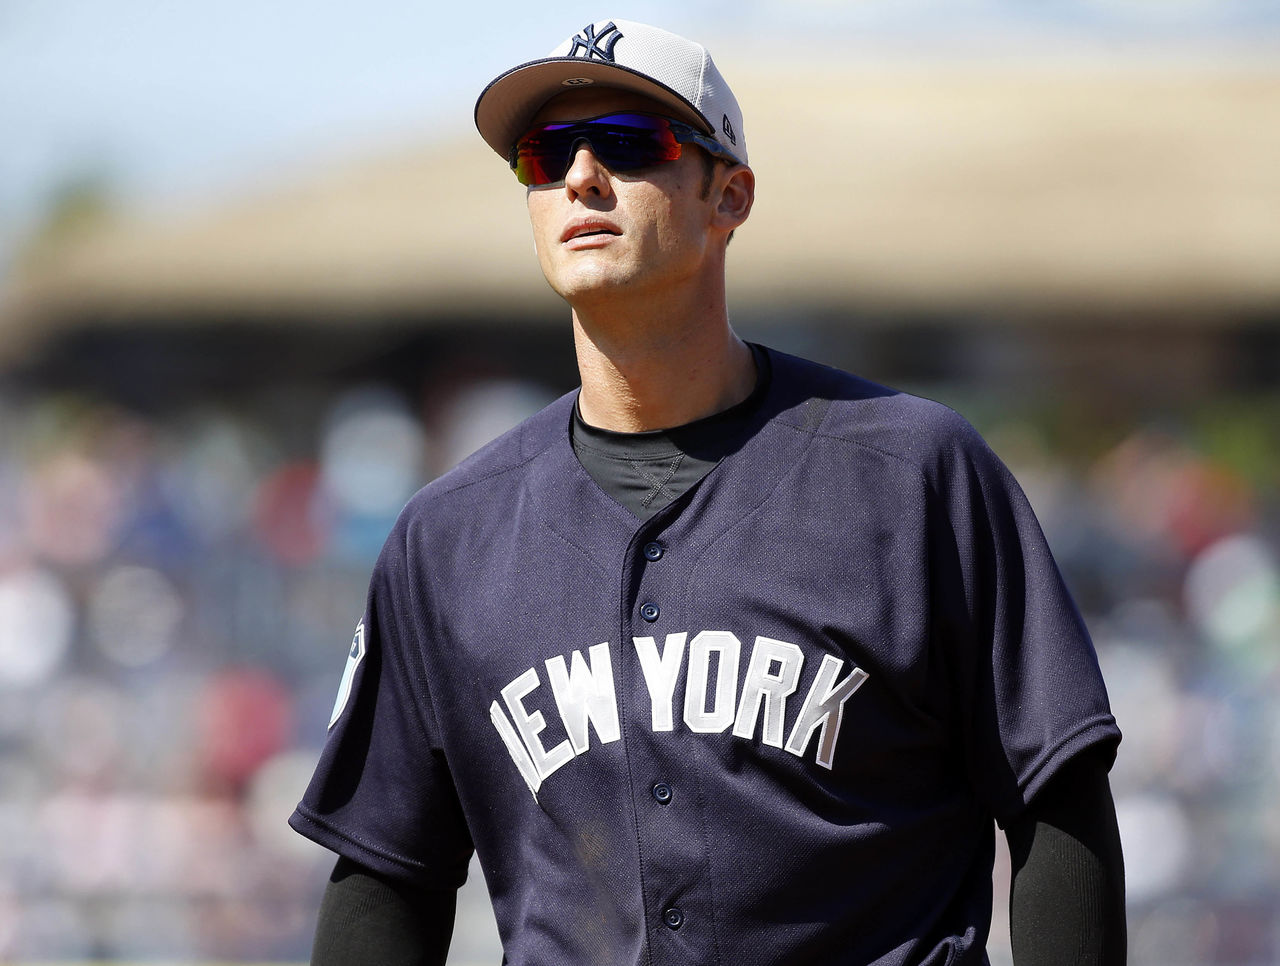 Cropped 2017 03 10t205545z 1623778209 nocid rtrmadp 3 mlb spring training new york yankees at philadelphia phillies